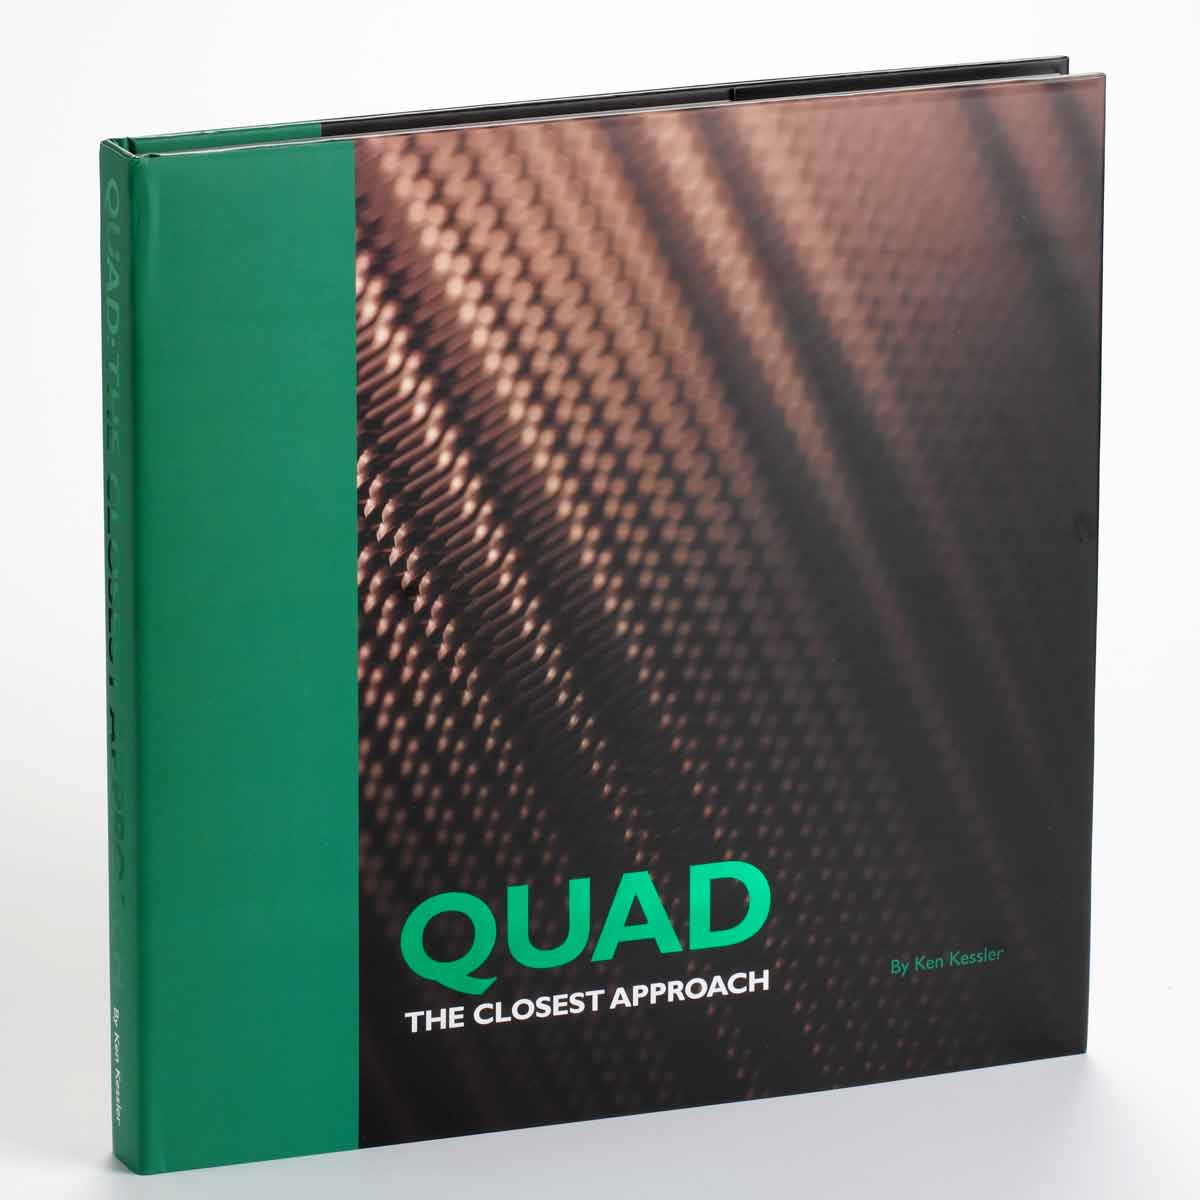 The QUAD Book